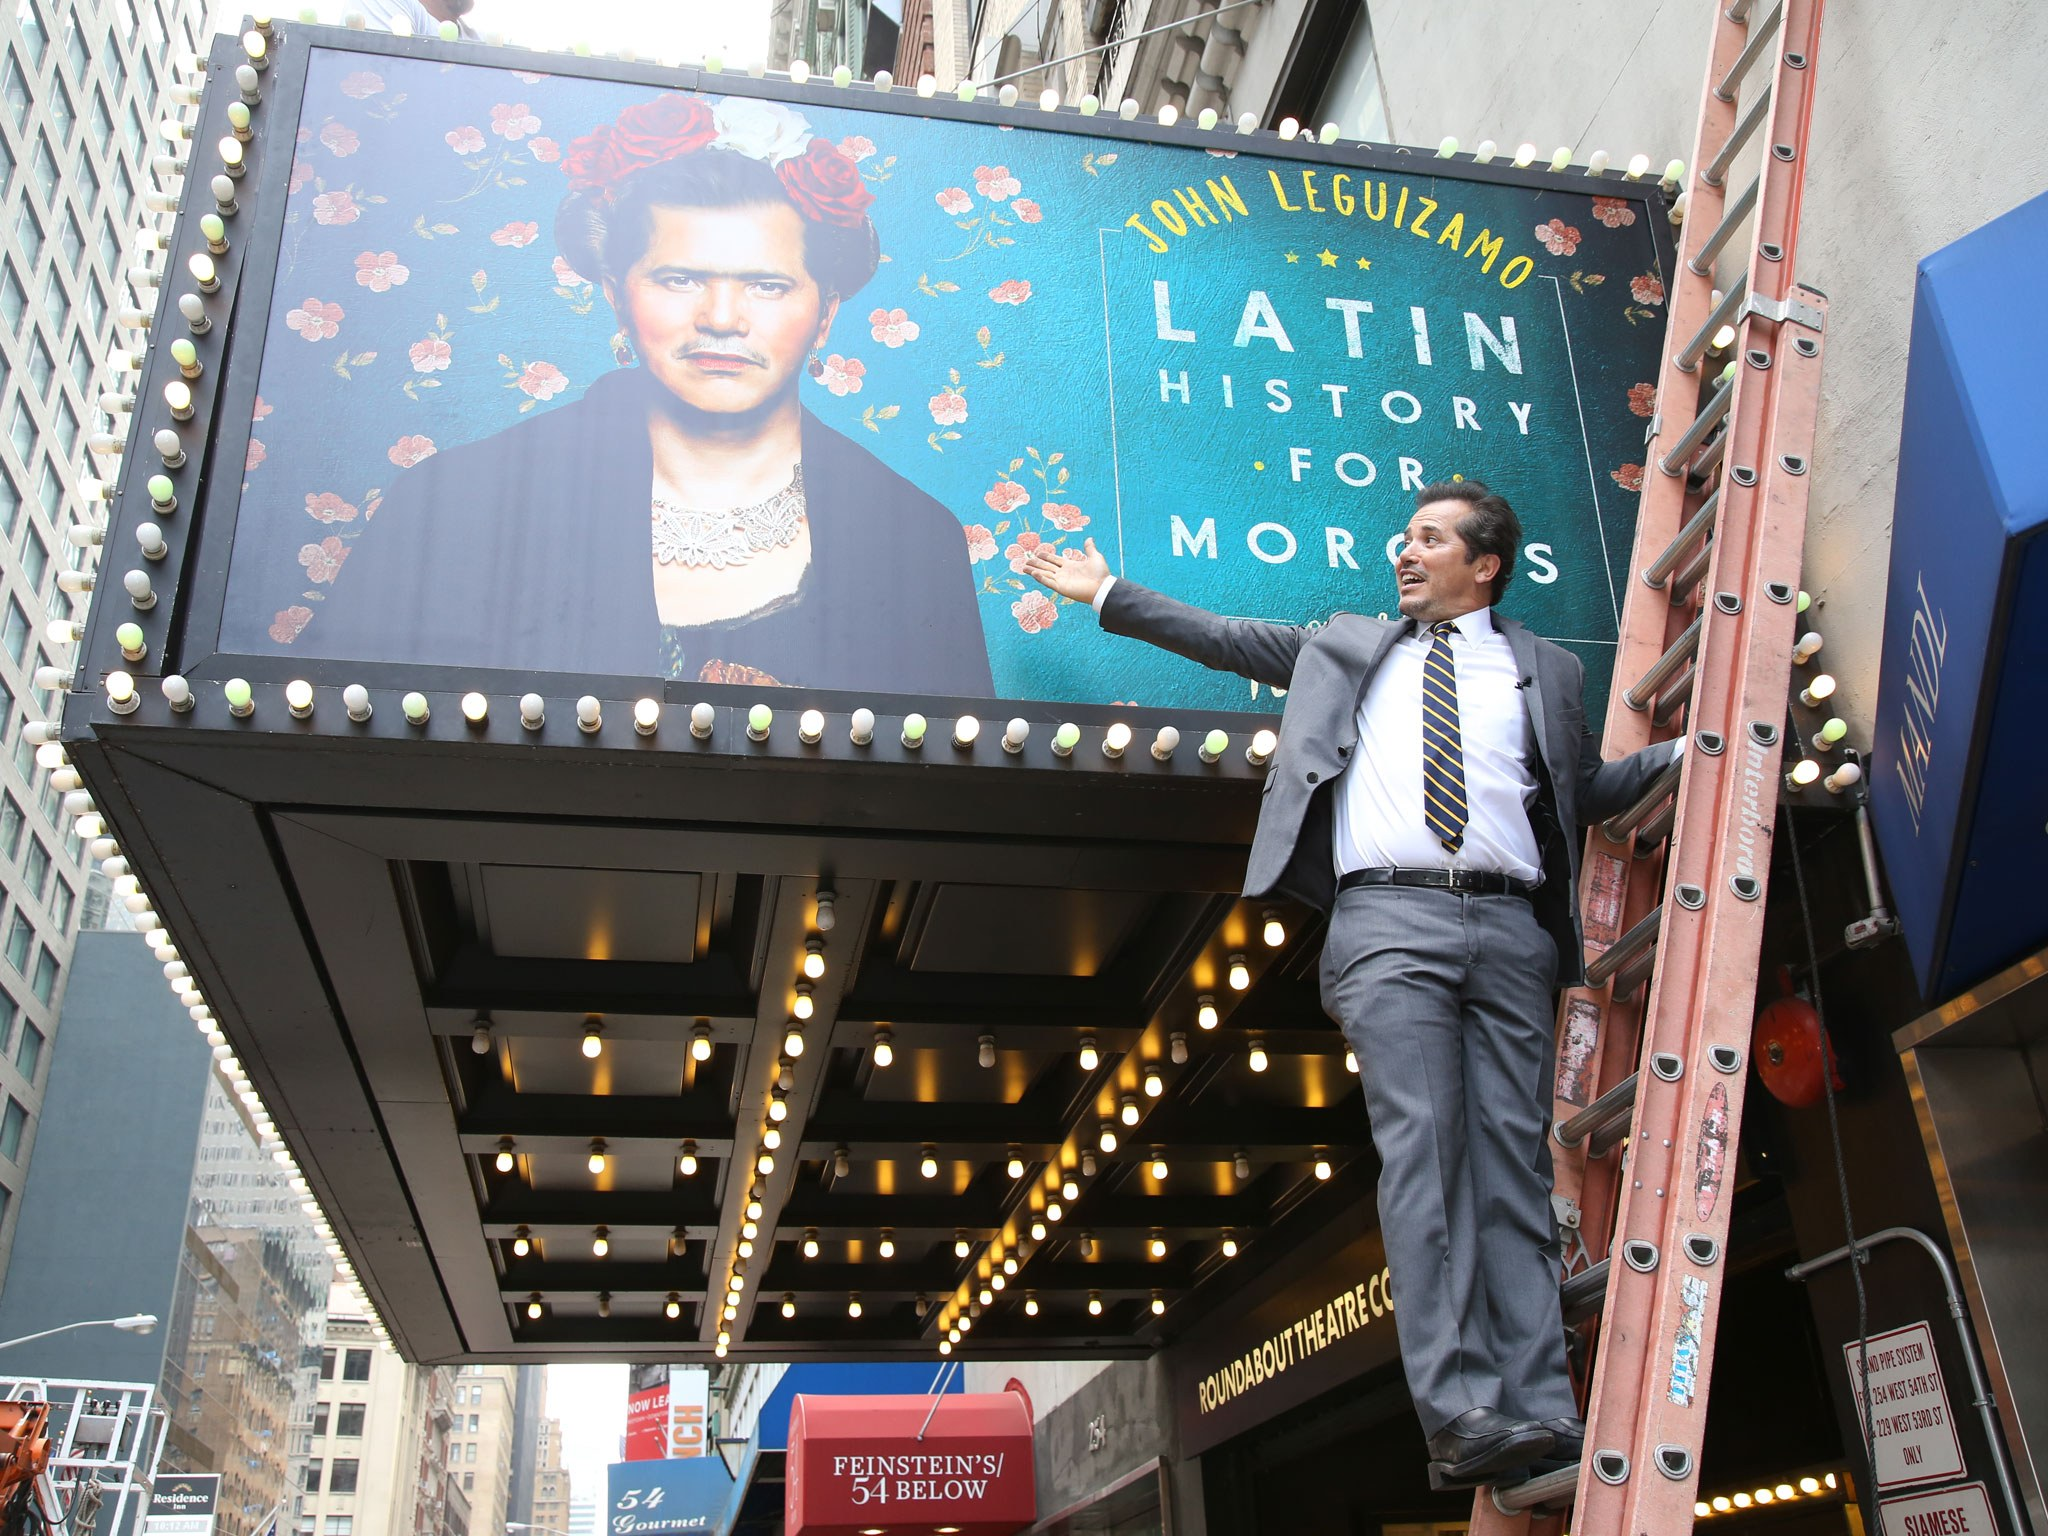 Broadway Show Latin History for Morons Theatre Marquee